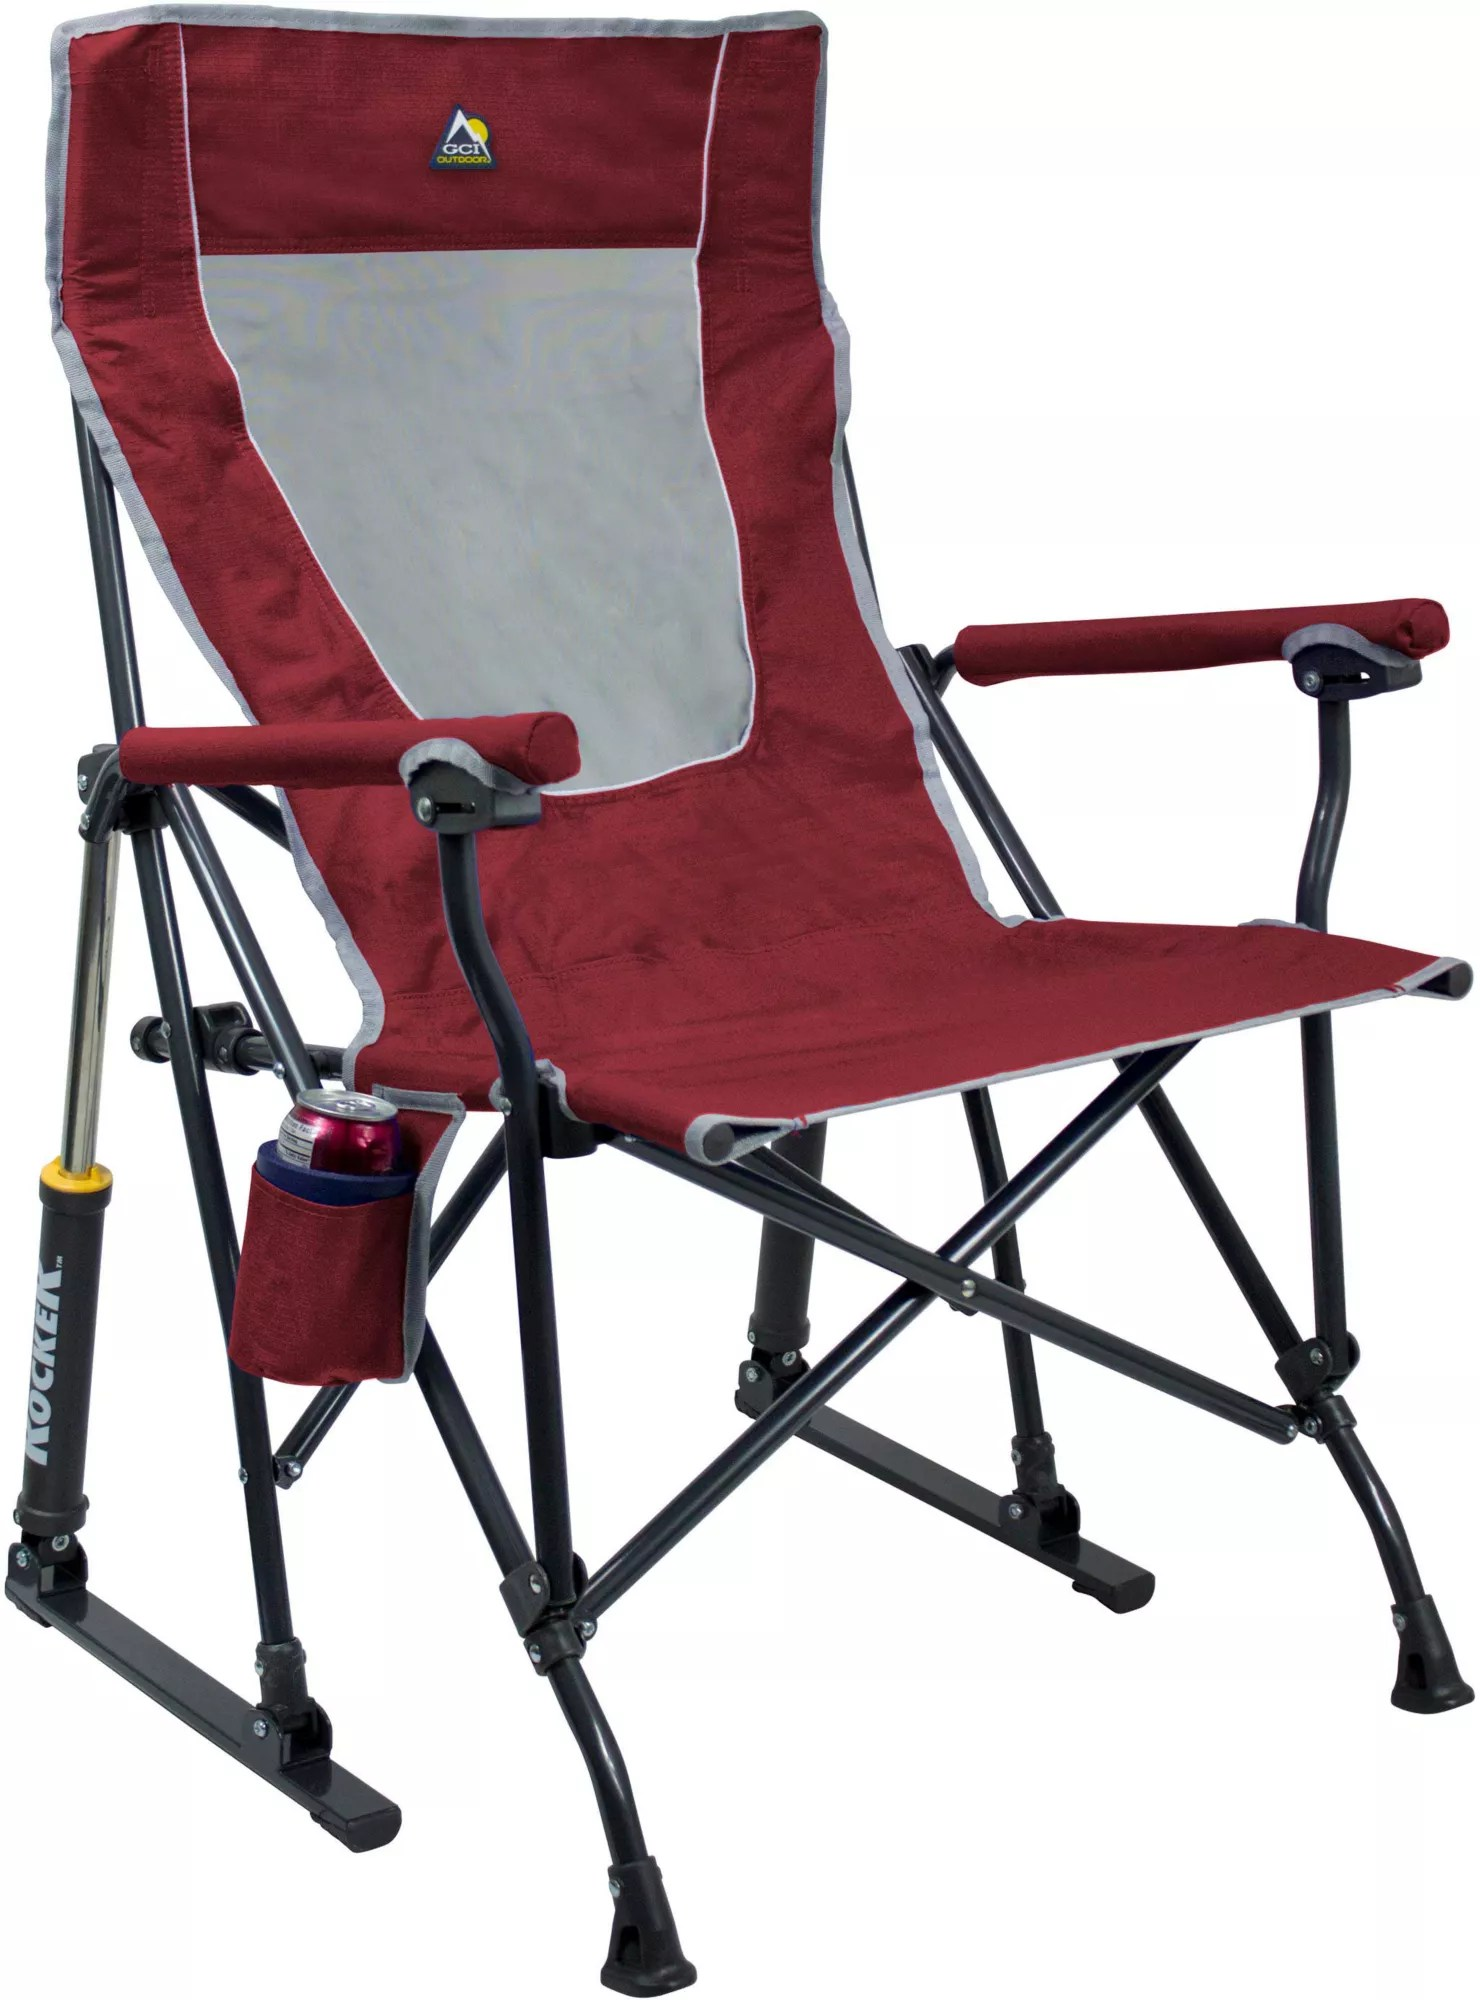 fishing chair no arms grey rolling dining chairs camping folding best price guarantee at dick s